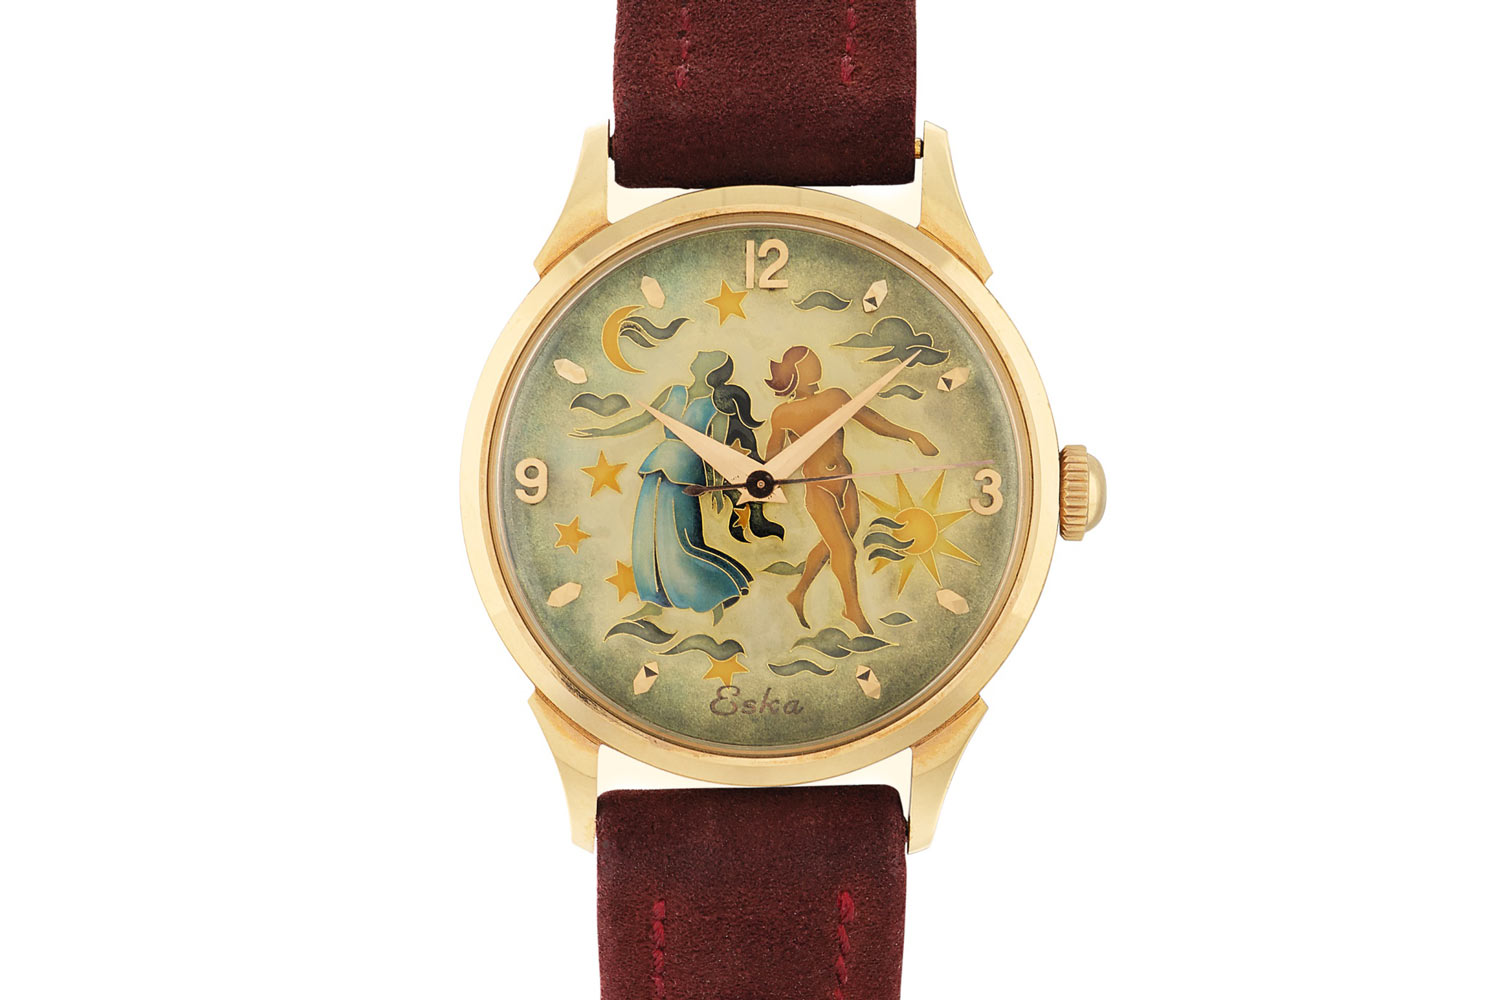 Lot 455: Eska. Pink gold wristwatch with cloisonné enamel dial, circa 1950